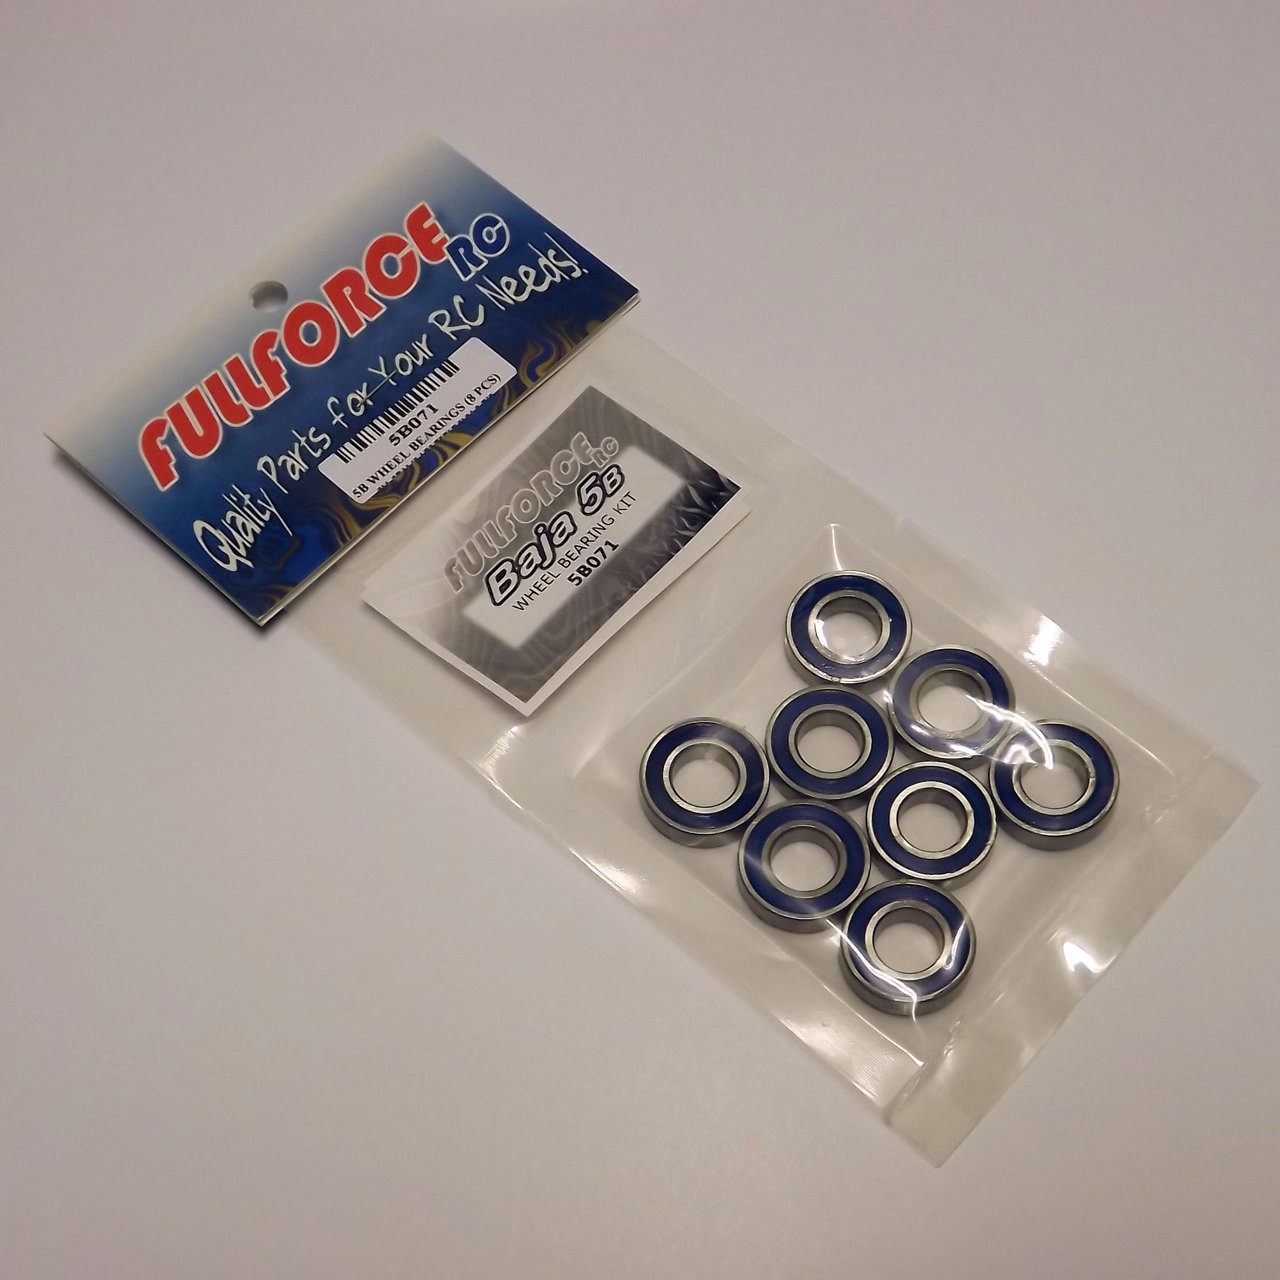 HPI Baja 8 piece wheel bearing kit packed and ready to ship!